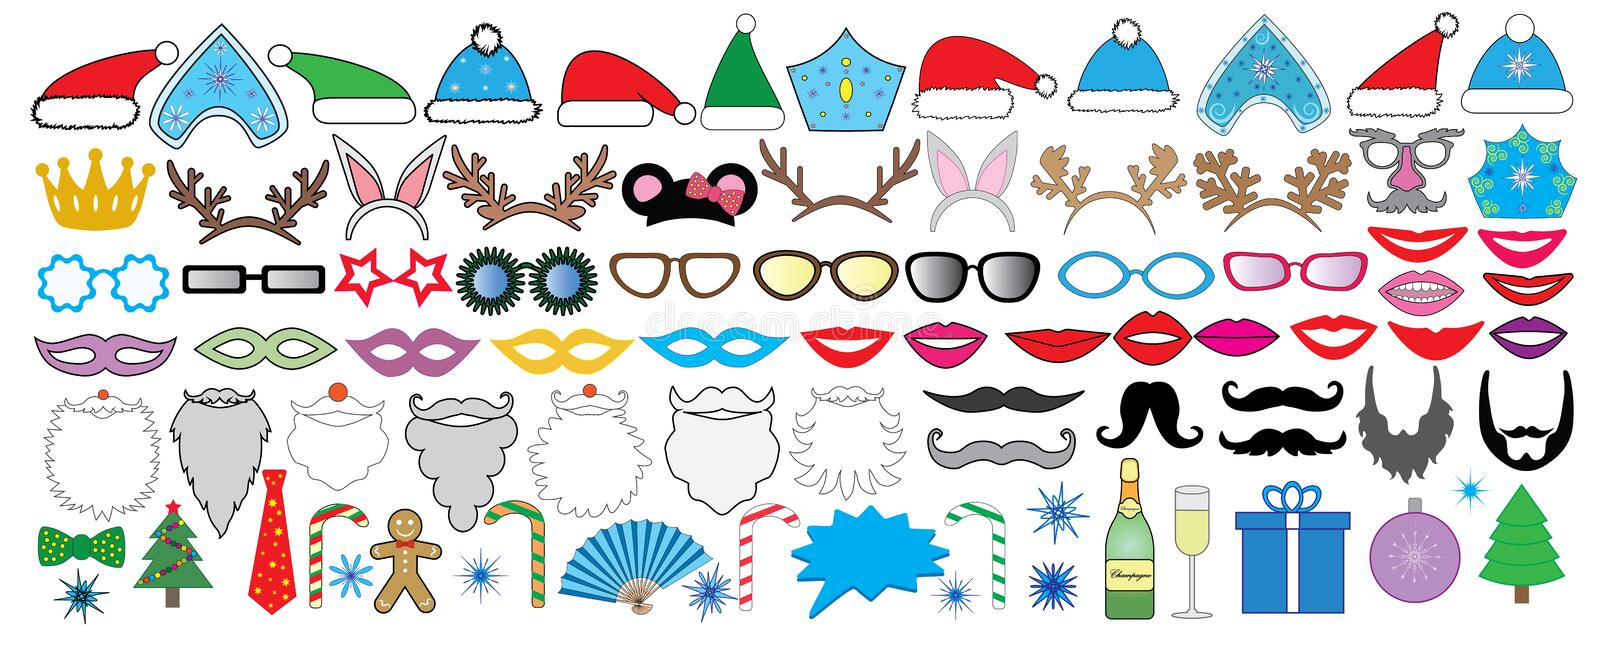 New year Christmas party big set. Photo booth props. Vector. New year Christmas party big set. Photo booth props. Vector royalty free illustration